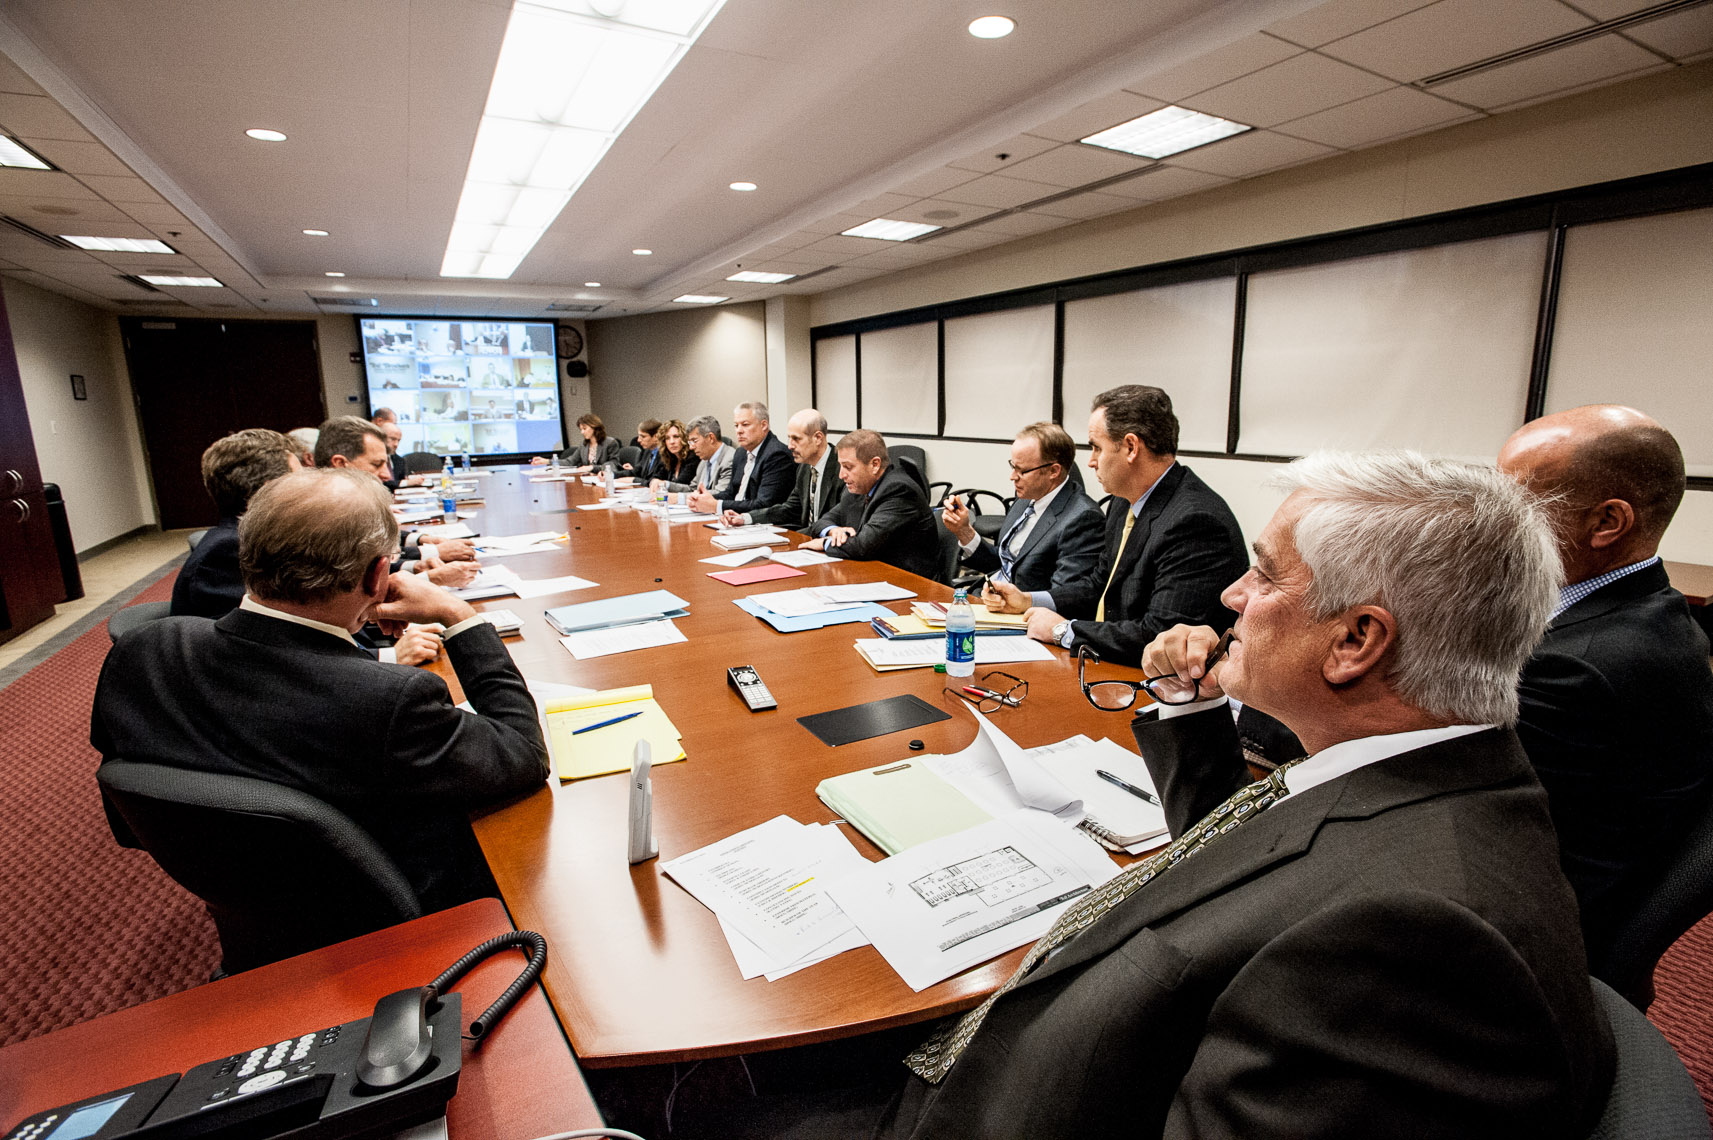 corporate-portrait-photography-business-philadelphia-office-meeting-223